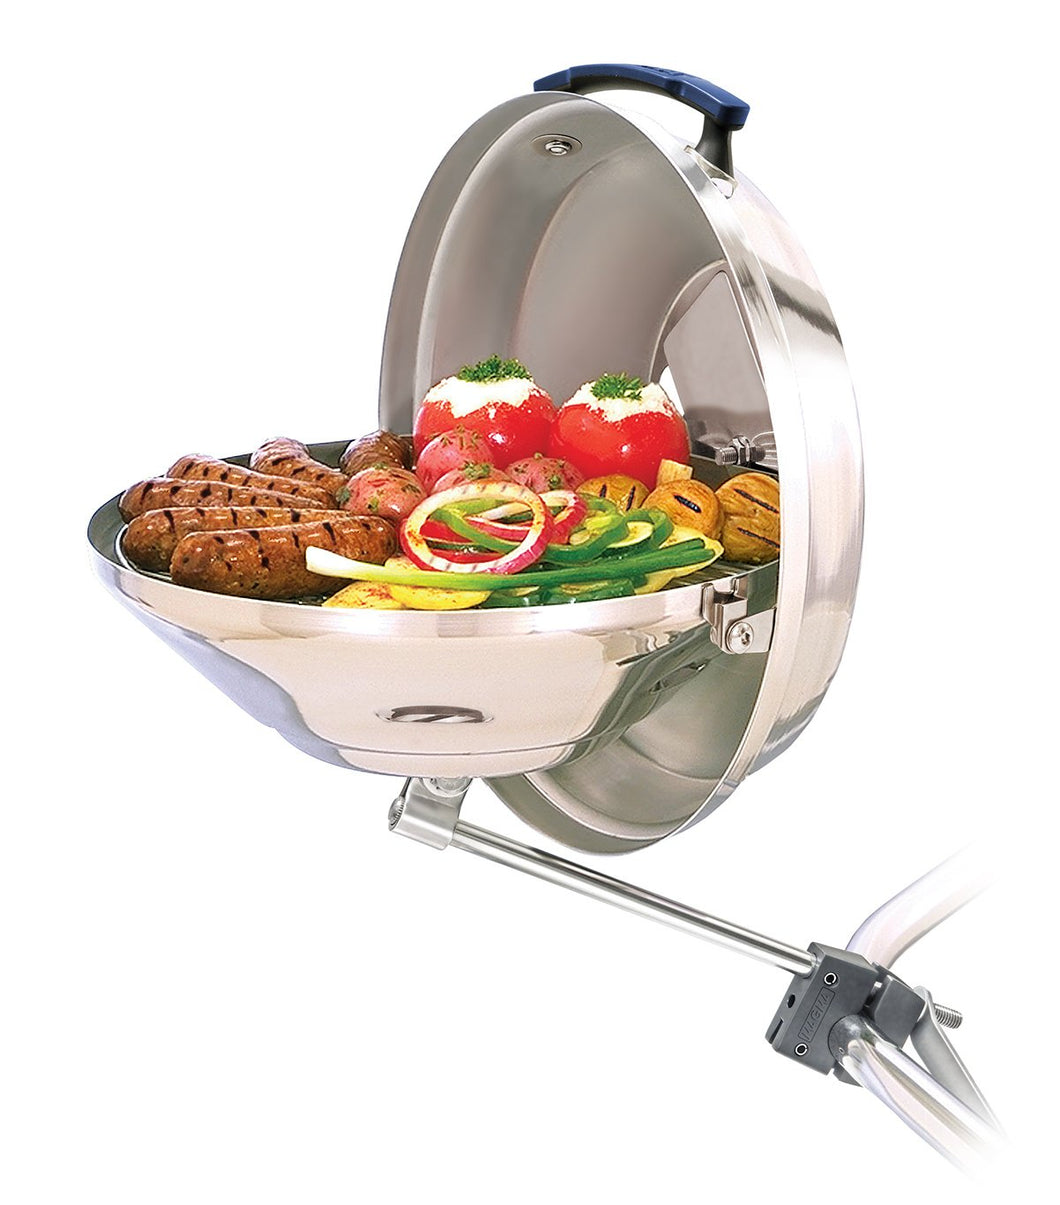 Original Marine Kettle grill rail mounted with grilled saugage and vegetables